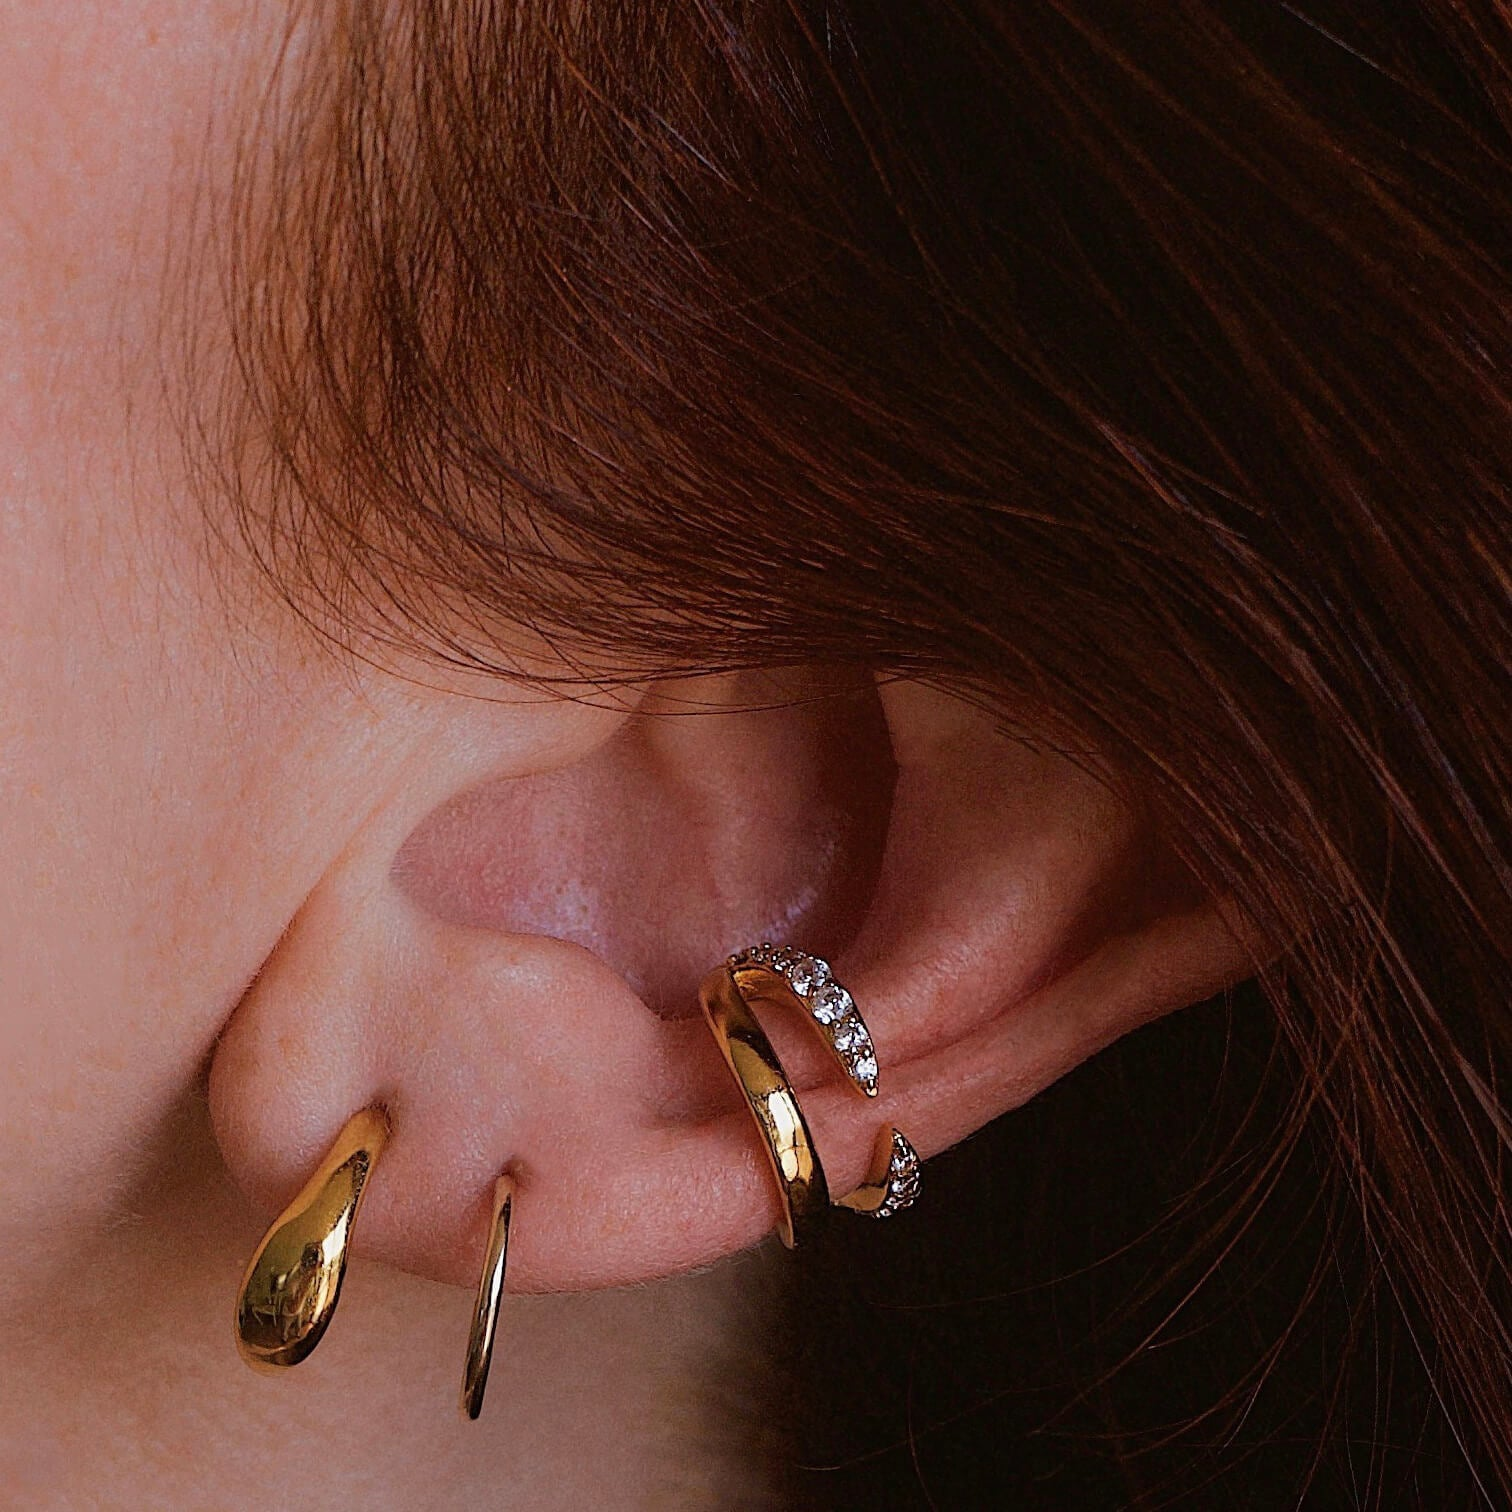 Nose Ring Infinite Hoop Small Tragus Body Piercing Endless Hoop Hex Piercing Helix Cartilage Piercing Continuous Rook Gold MCENDHOOPGF